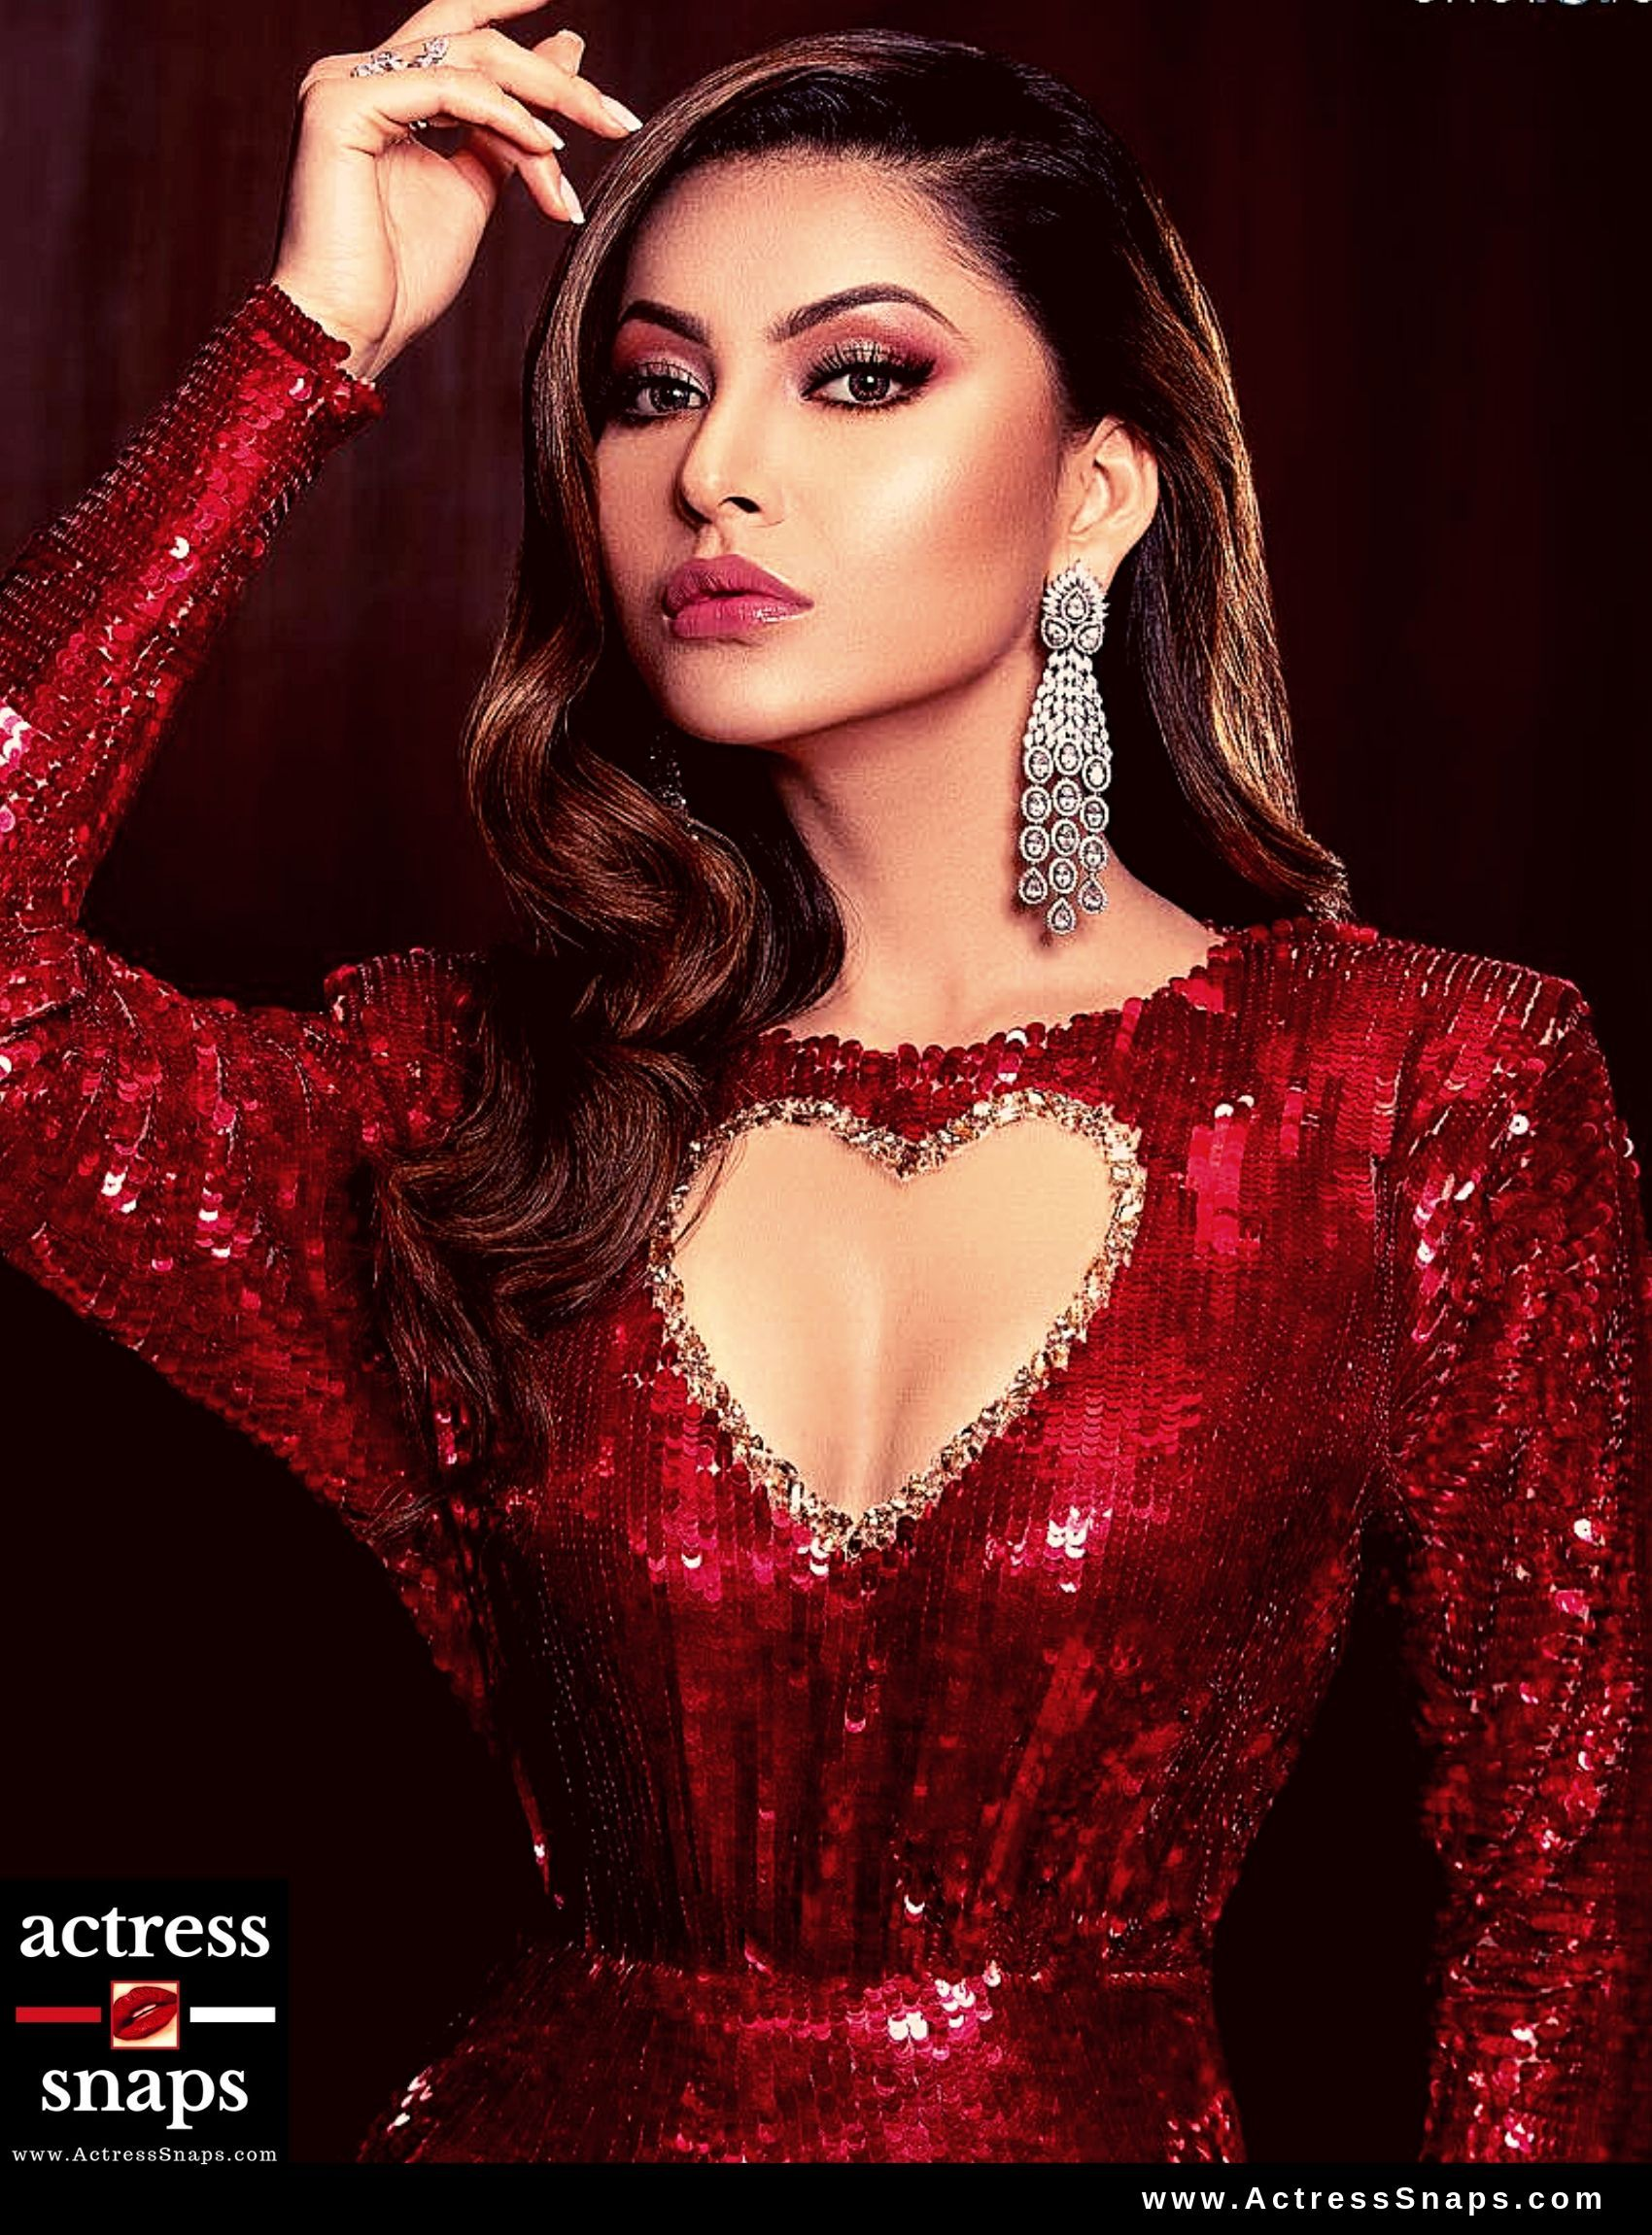 Sexiest GIFs of Urvashi Rautela - Sexy Actress Pictures | Hot Actress Pictures - ActressSnaps.com